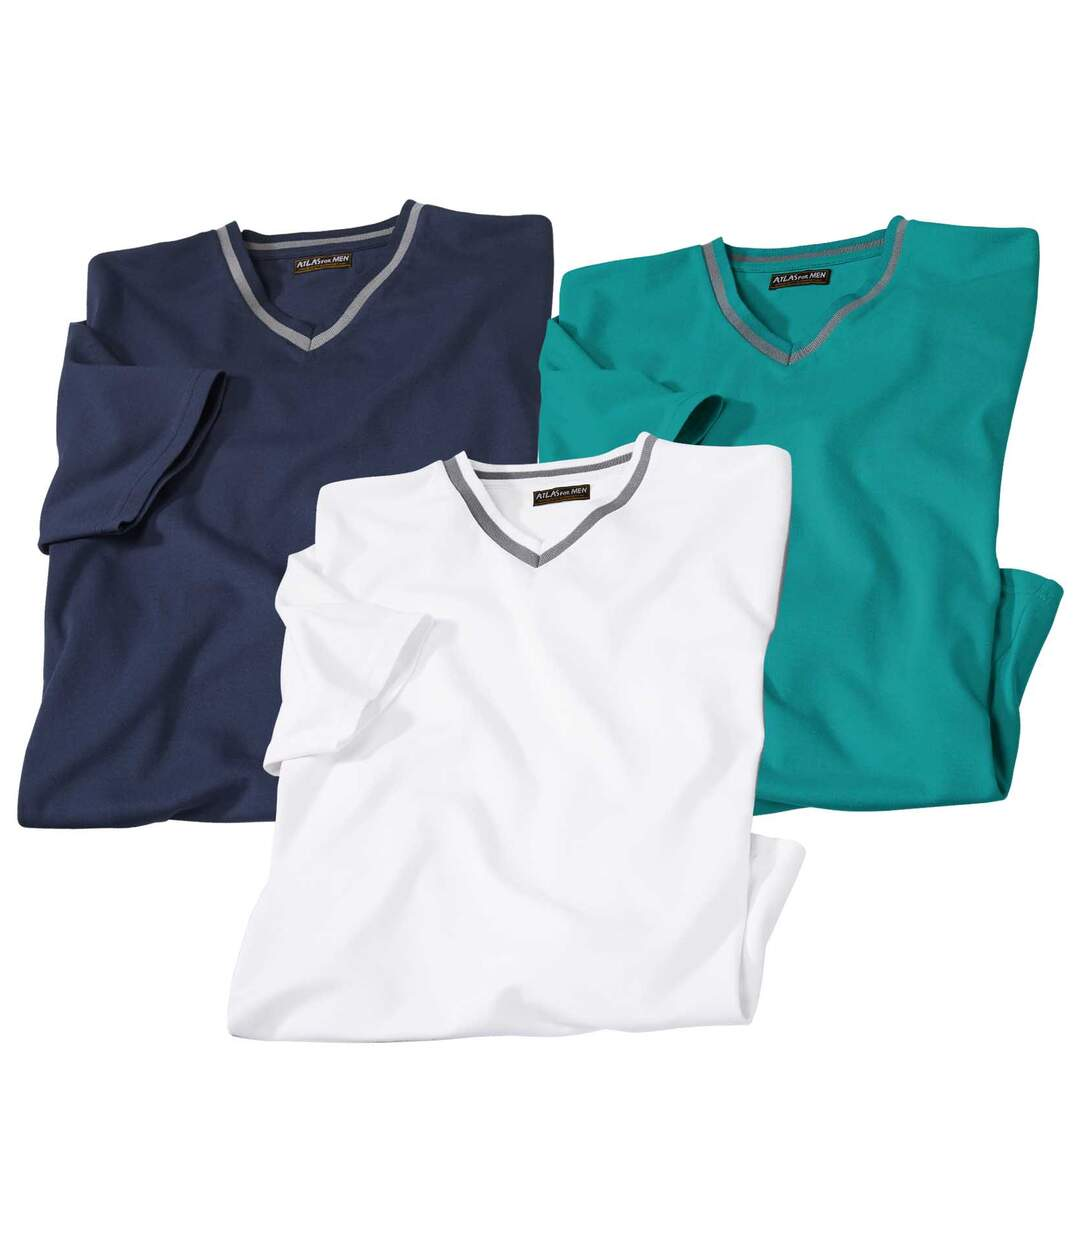 Pack of 3 Men's V-Neck Sea Side T-Shirts - White Navy Turquoise